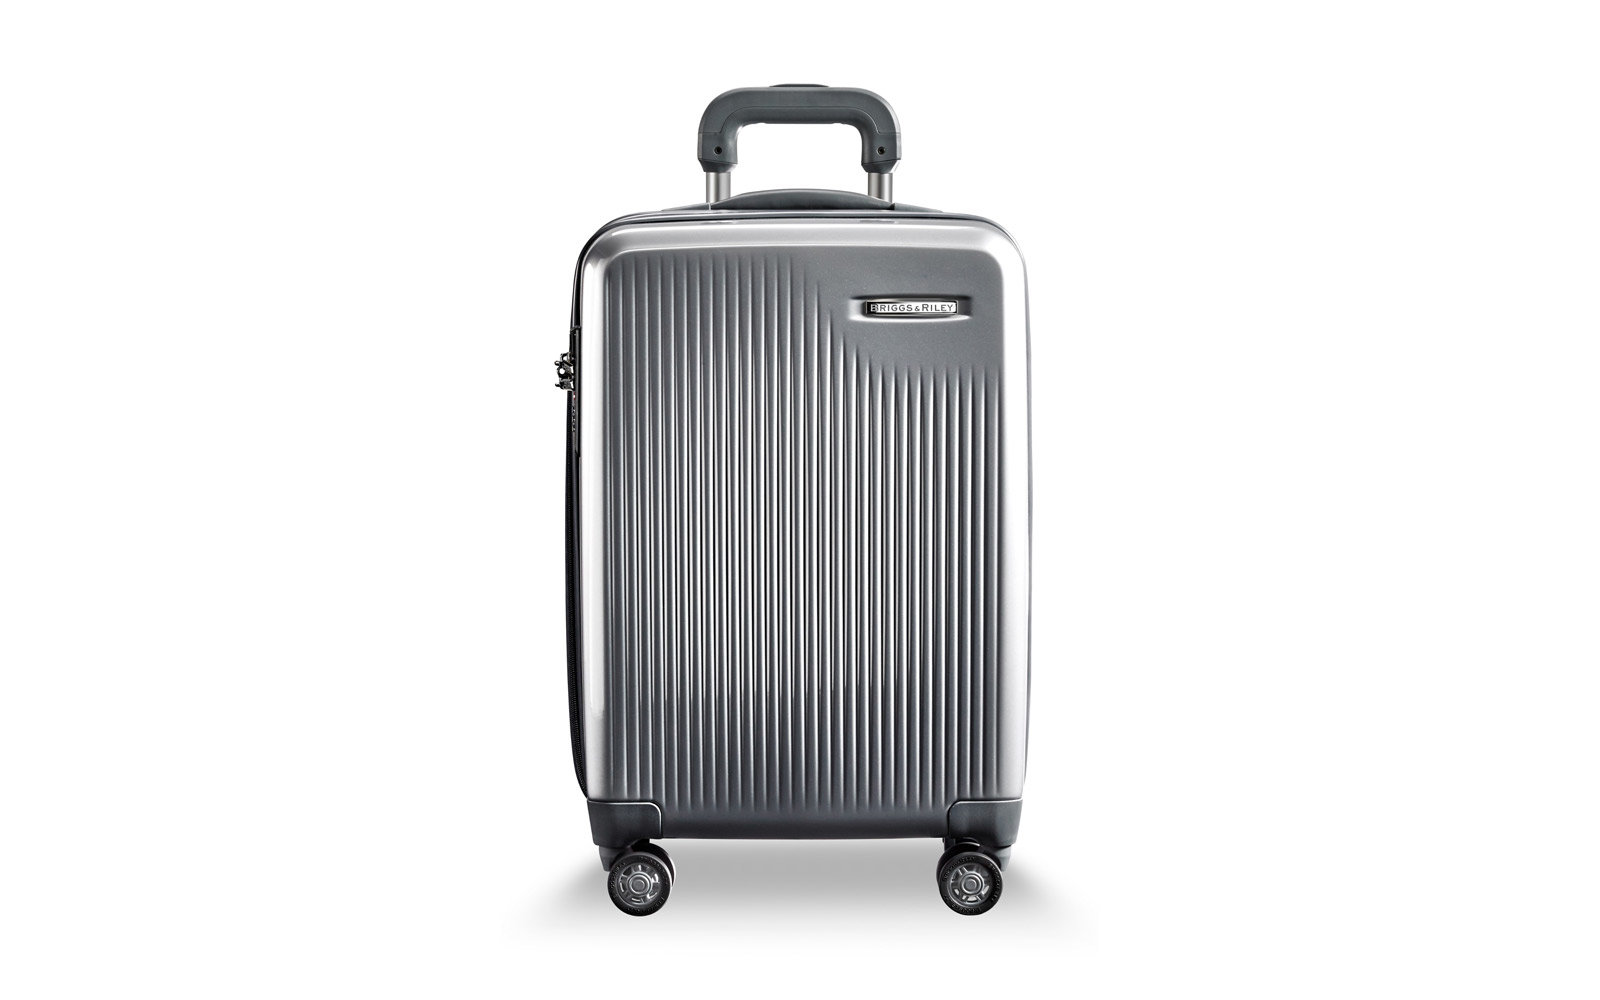 Best Hard-shell Carry-on: Briggs & Riley Sympatico Expandable 21-inch International Spinner